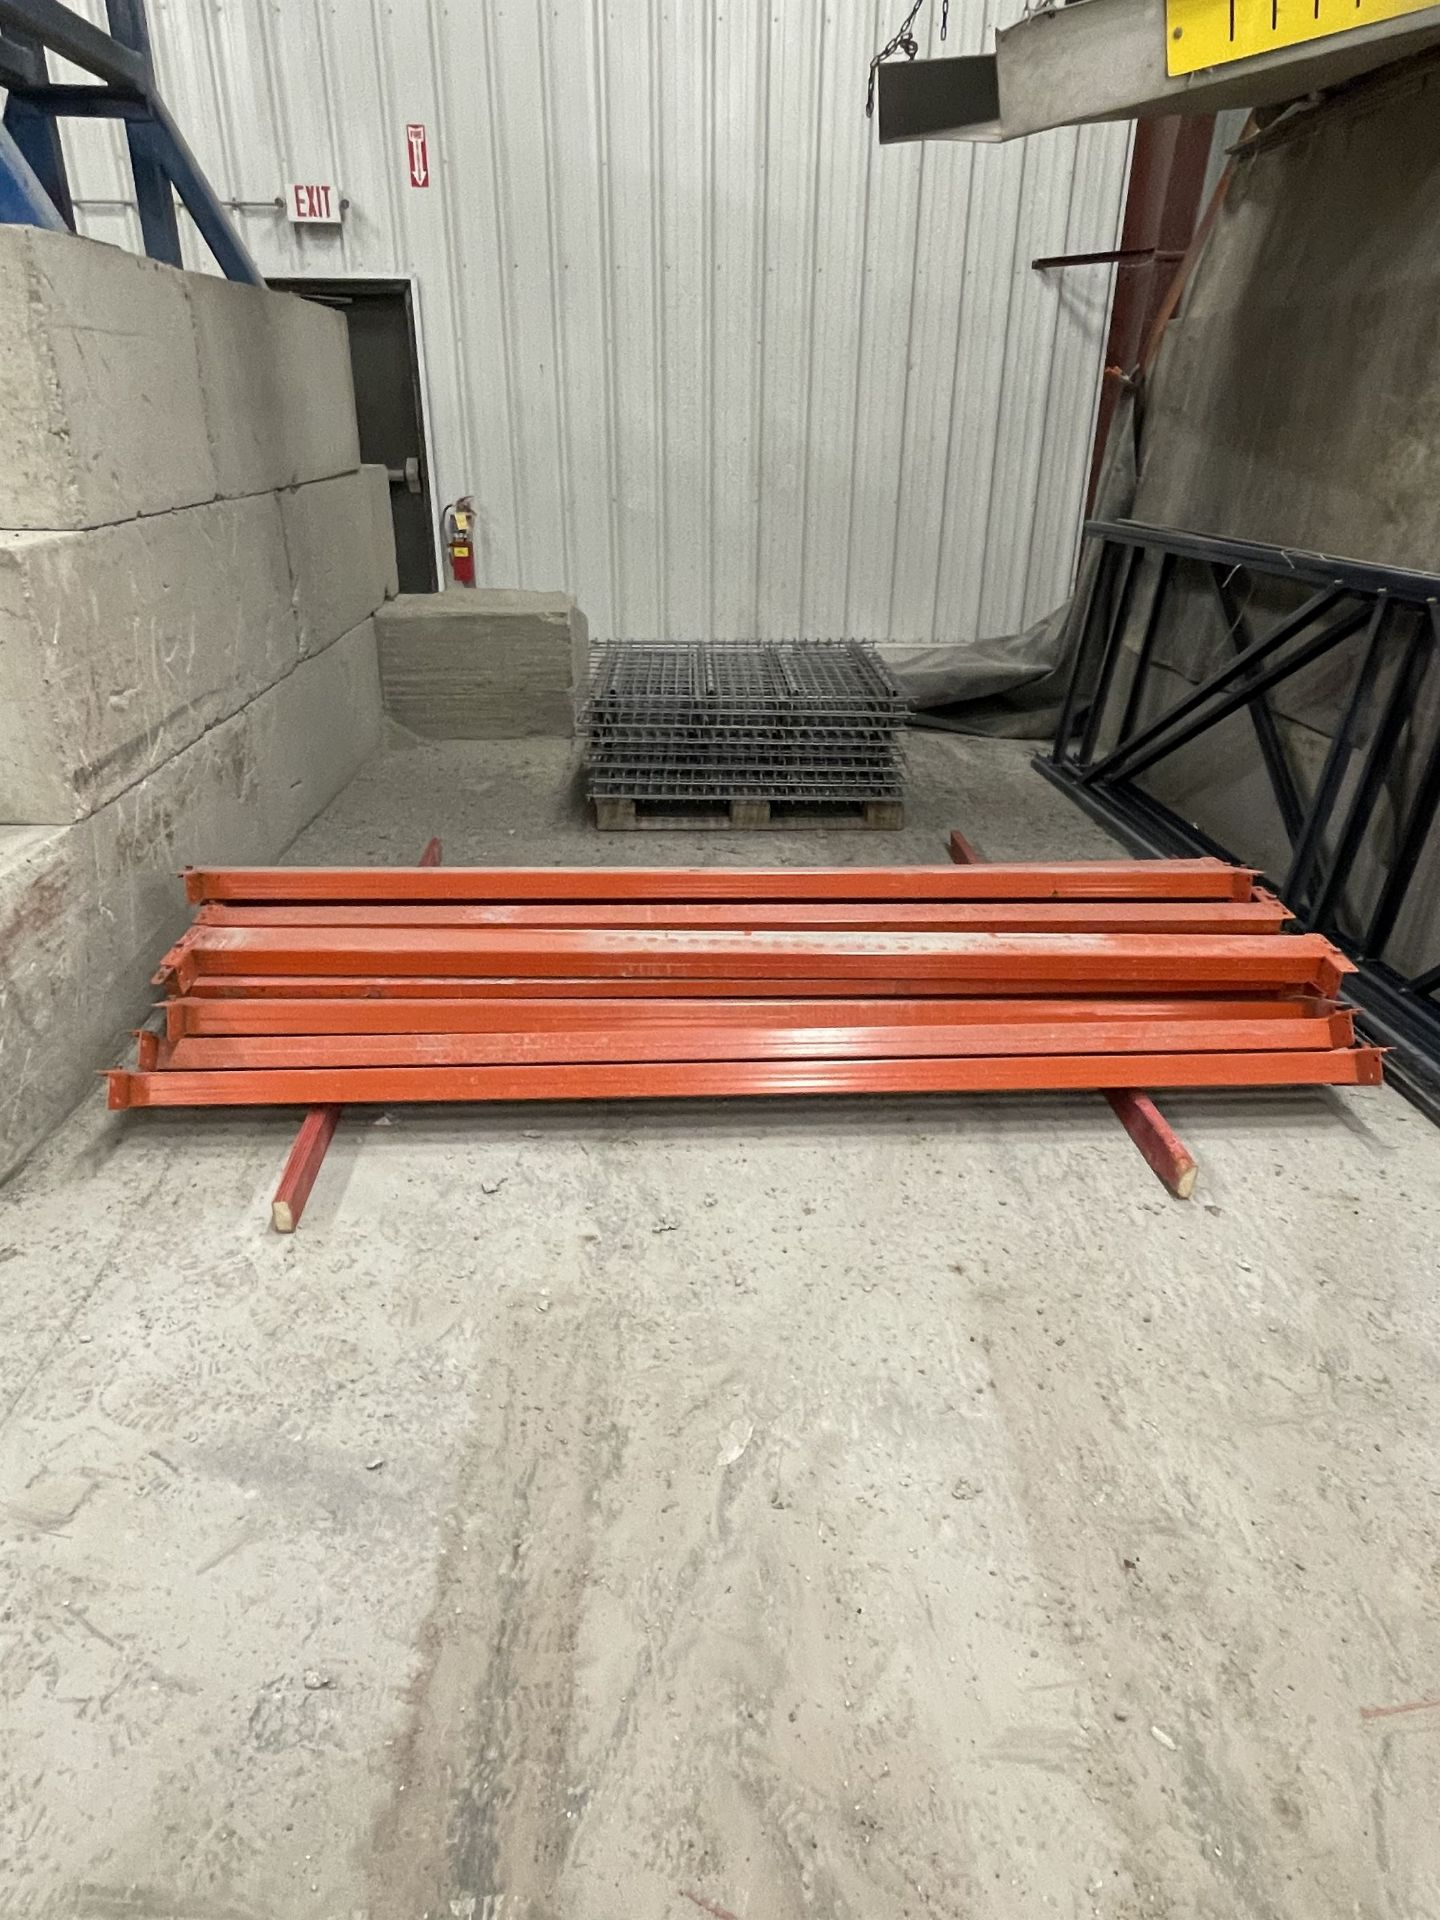 Pallet Racking (3) Uprights, (10) Beams, and (10) Sections of Wire Deck Shelves - Image 2 of 4